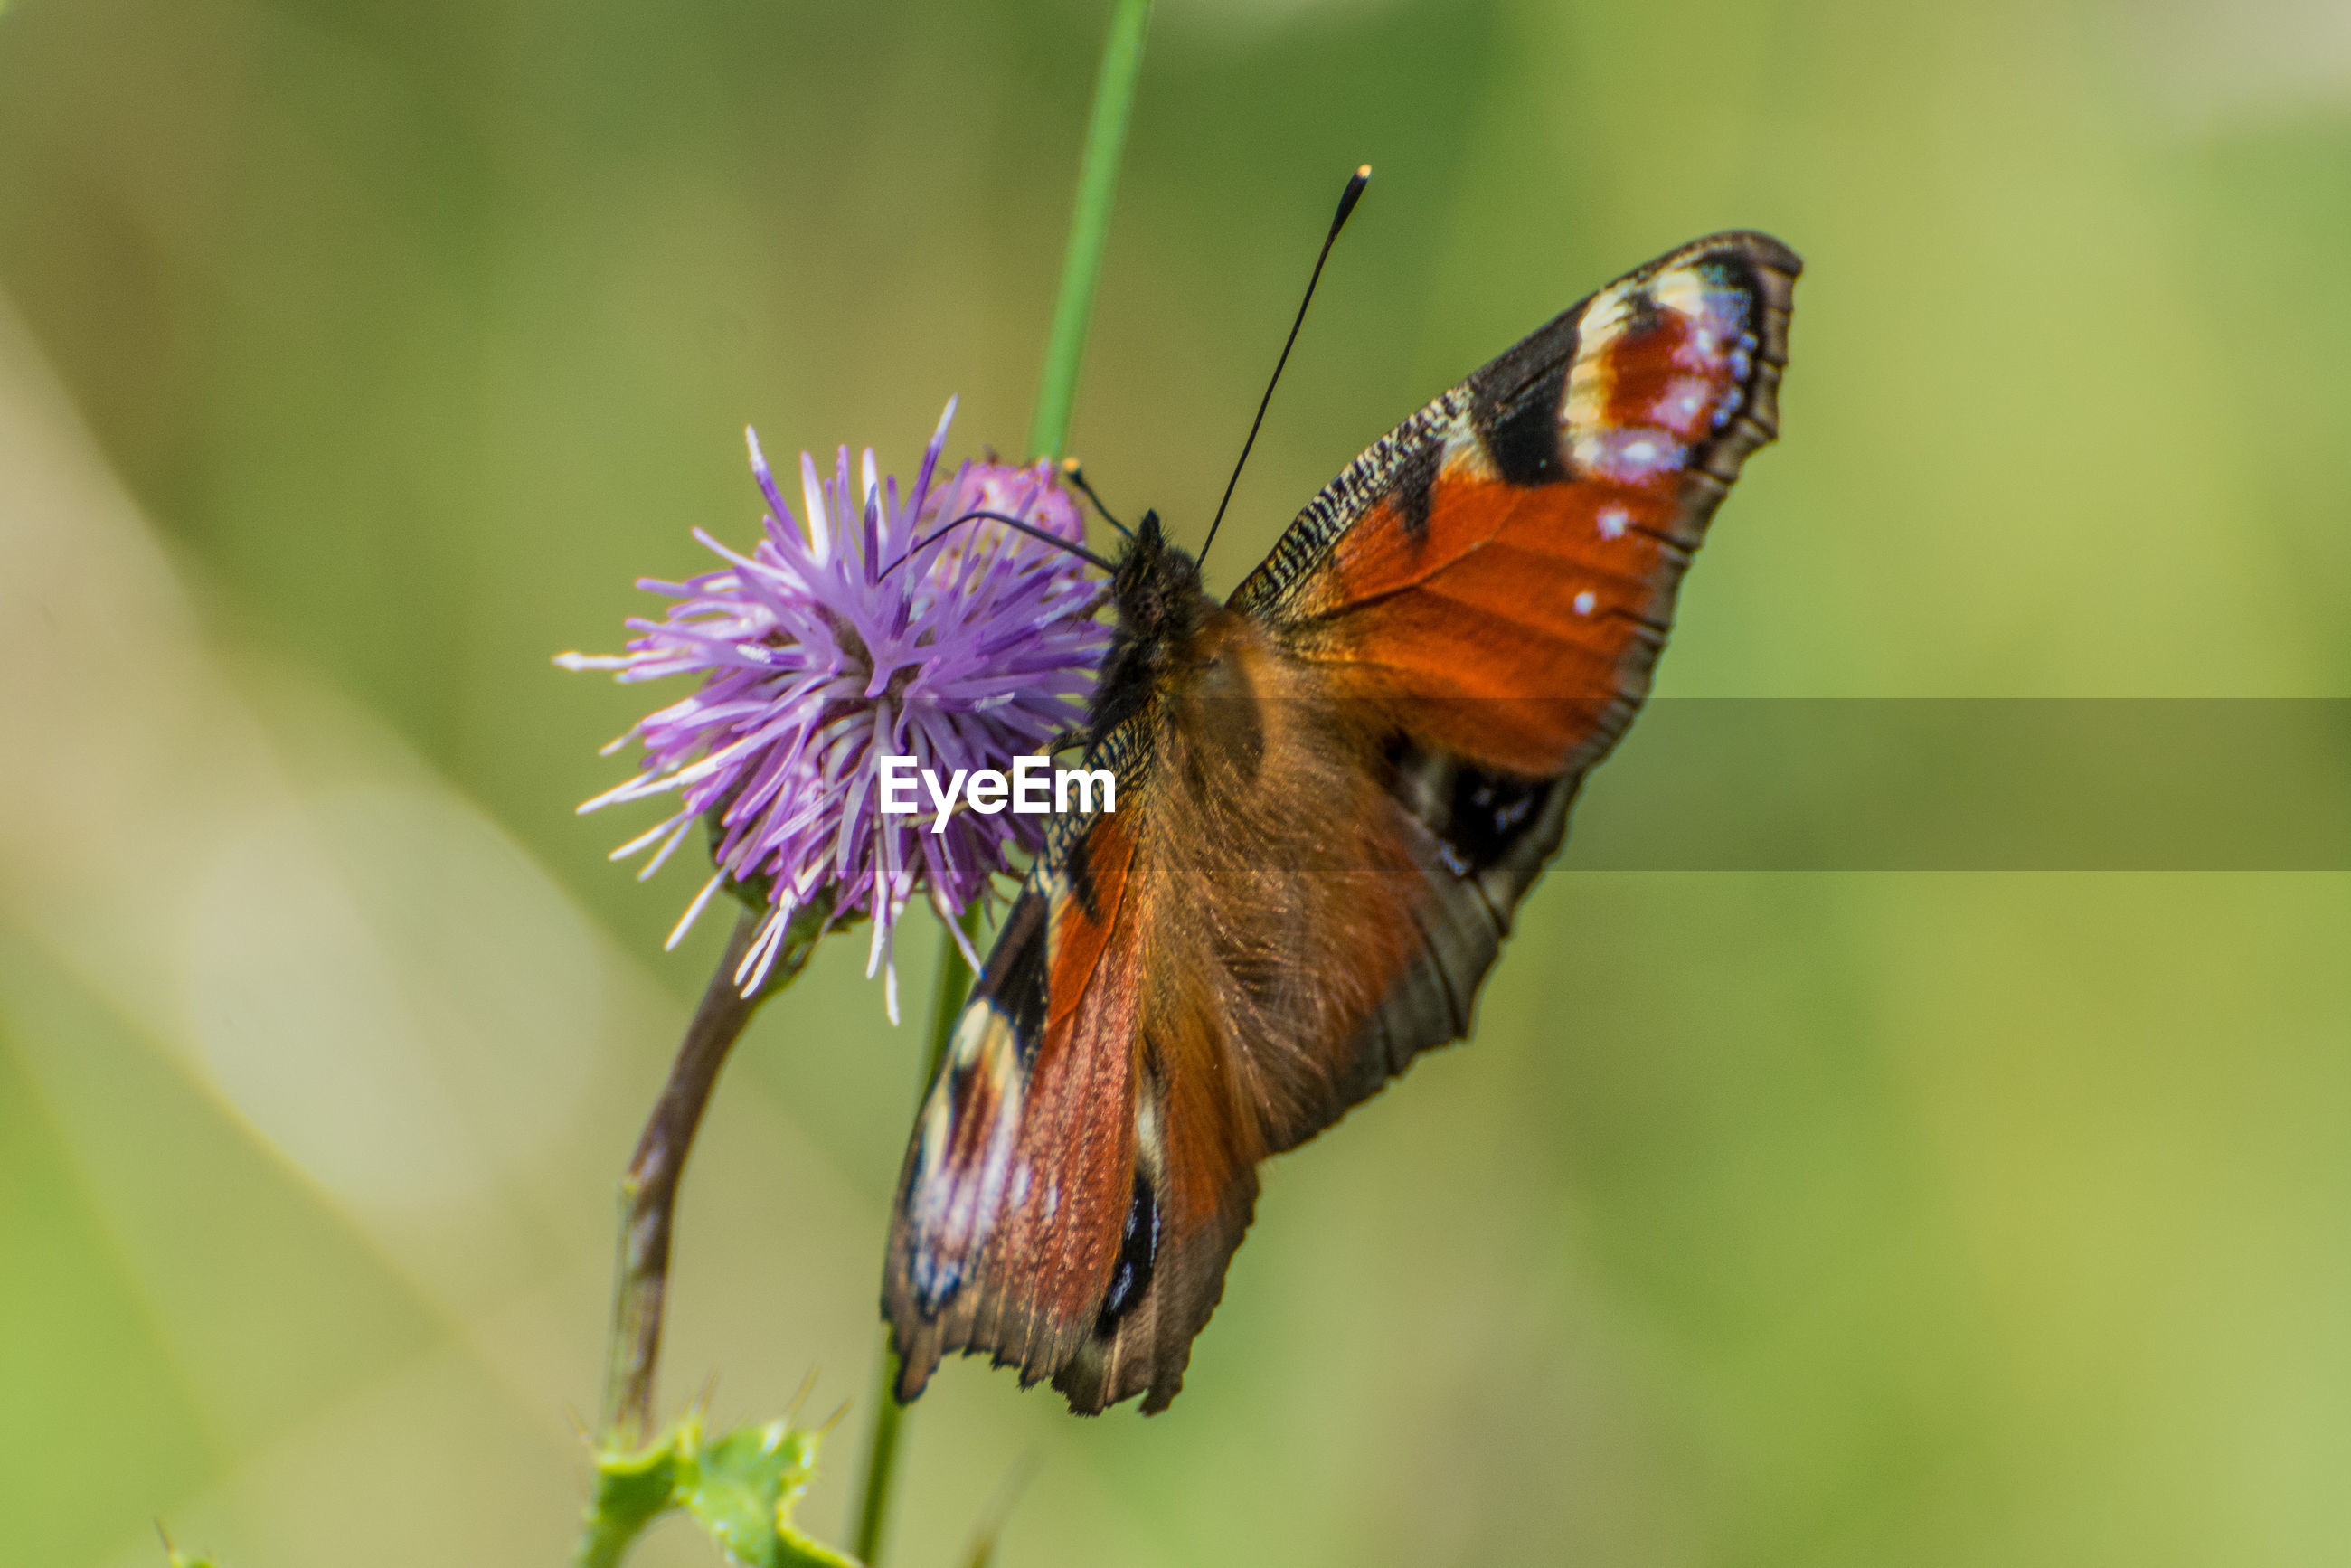 BUTTERFLY POLLINATING ON PURPLE FLOWER